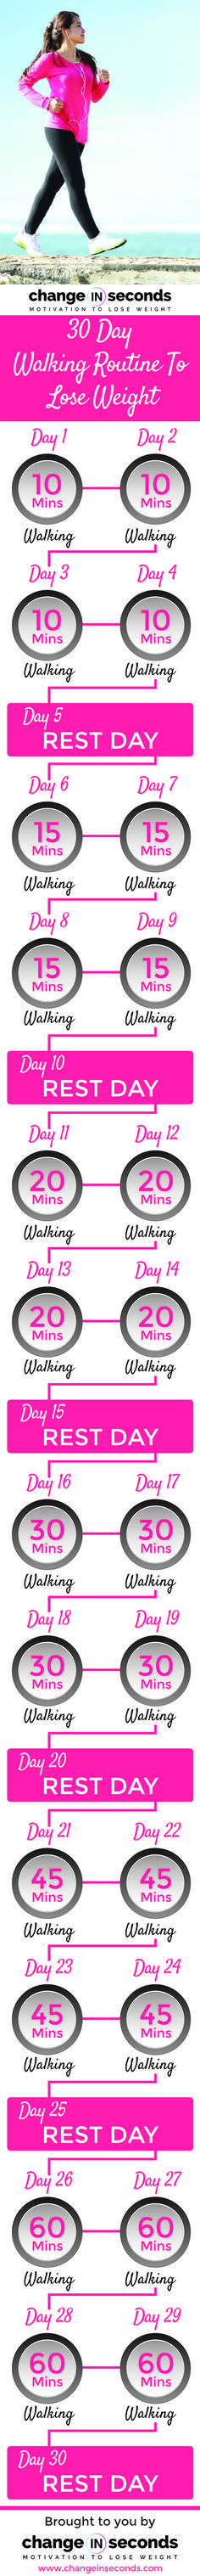 30 Day Walking Routine To Lose Weight (Download PDF) https://www.changeinseconds.com/30-day-walking-routine-to-lose-weight/